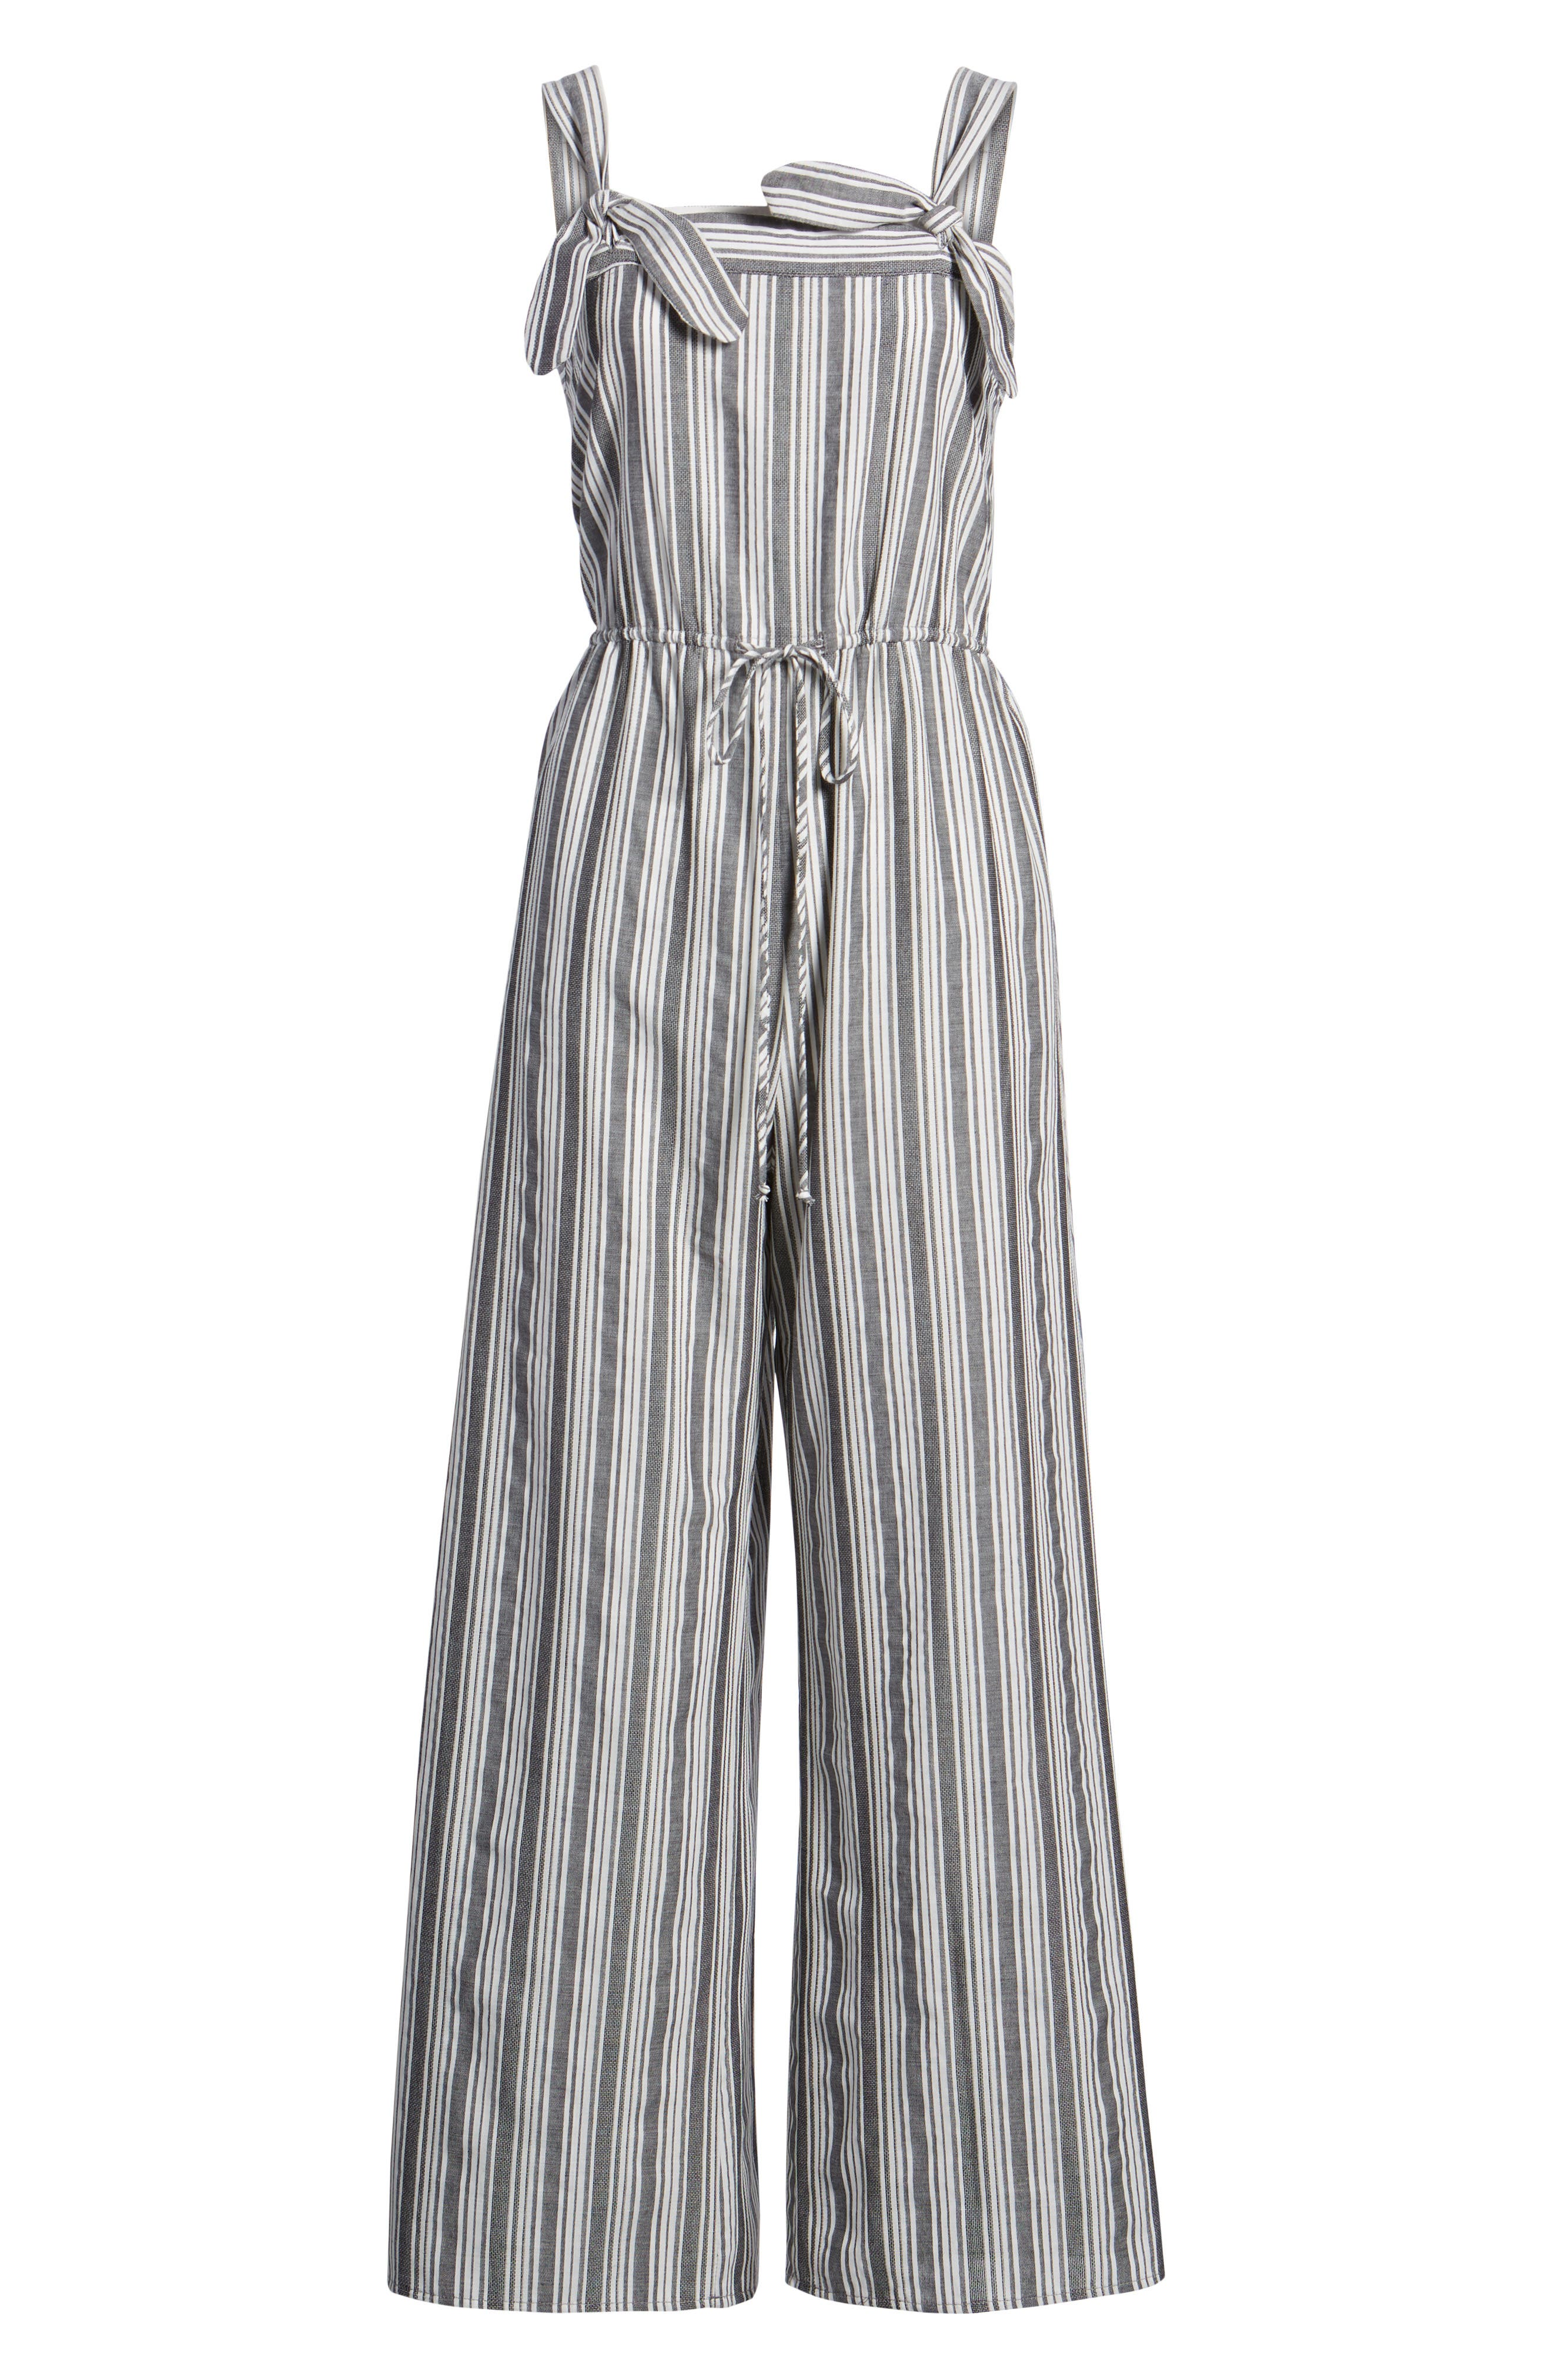 Stripe Knot Strap Jumpsuit,                             Alternate thumbnail 7, color,                             WHITE SUN STRIPE